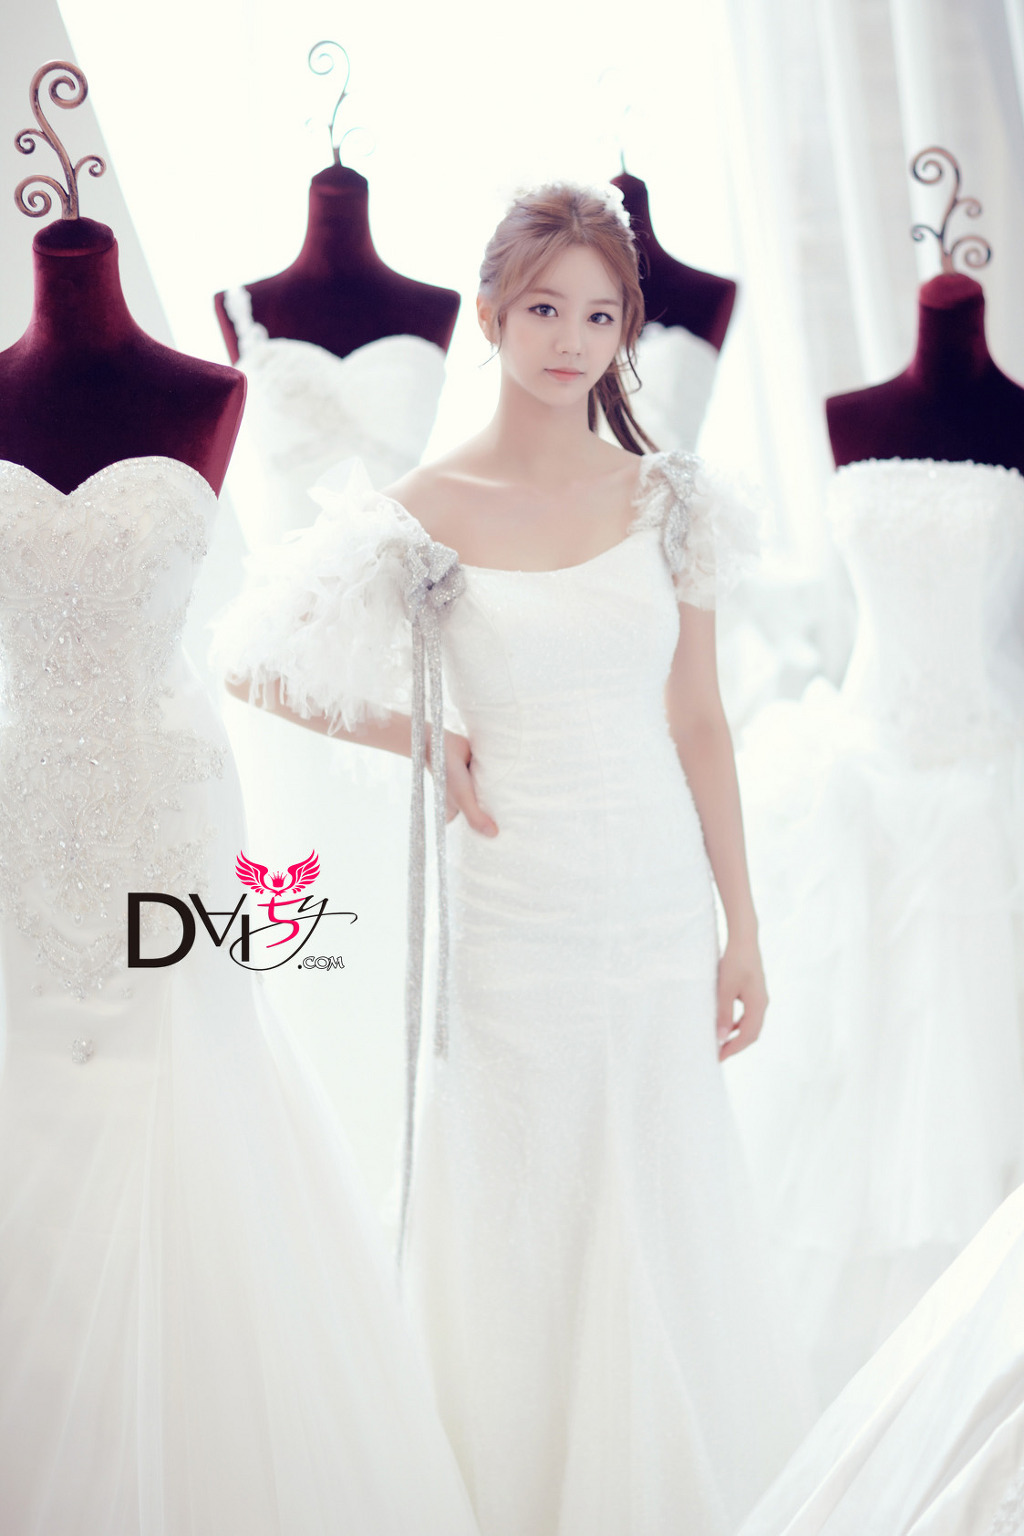 Pics Girl S Day Hyeri Everyday Wedding Dress Concept